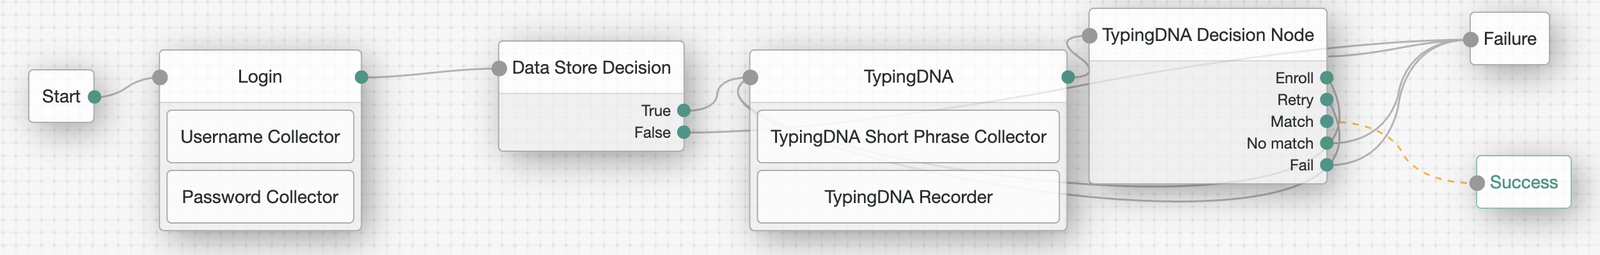 A sample Username and Password Authentication Tree in ForgeRock, integrated with the TypingDNA Nodes.